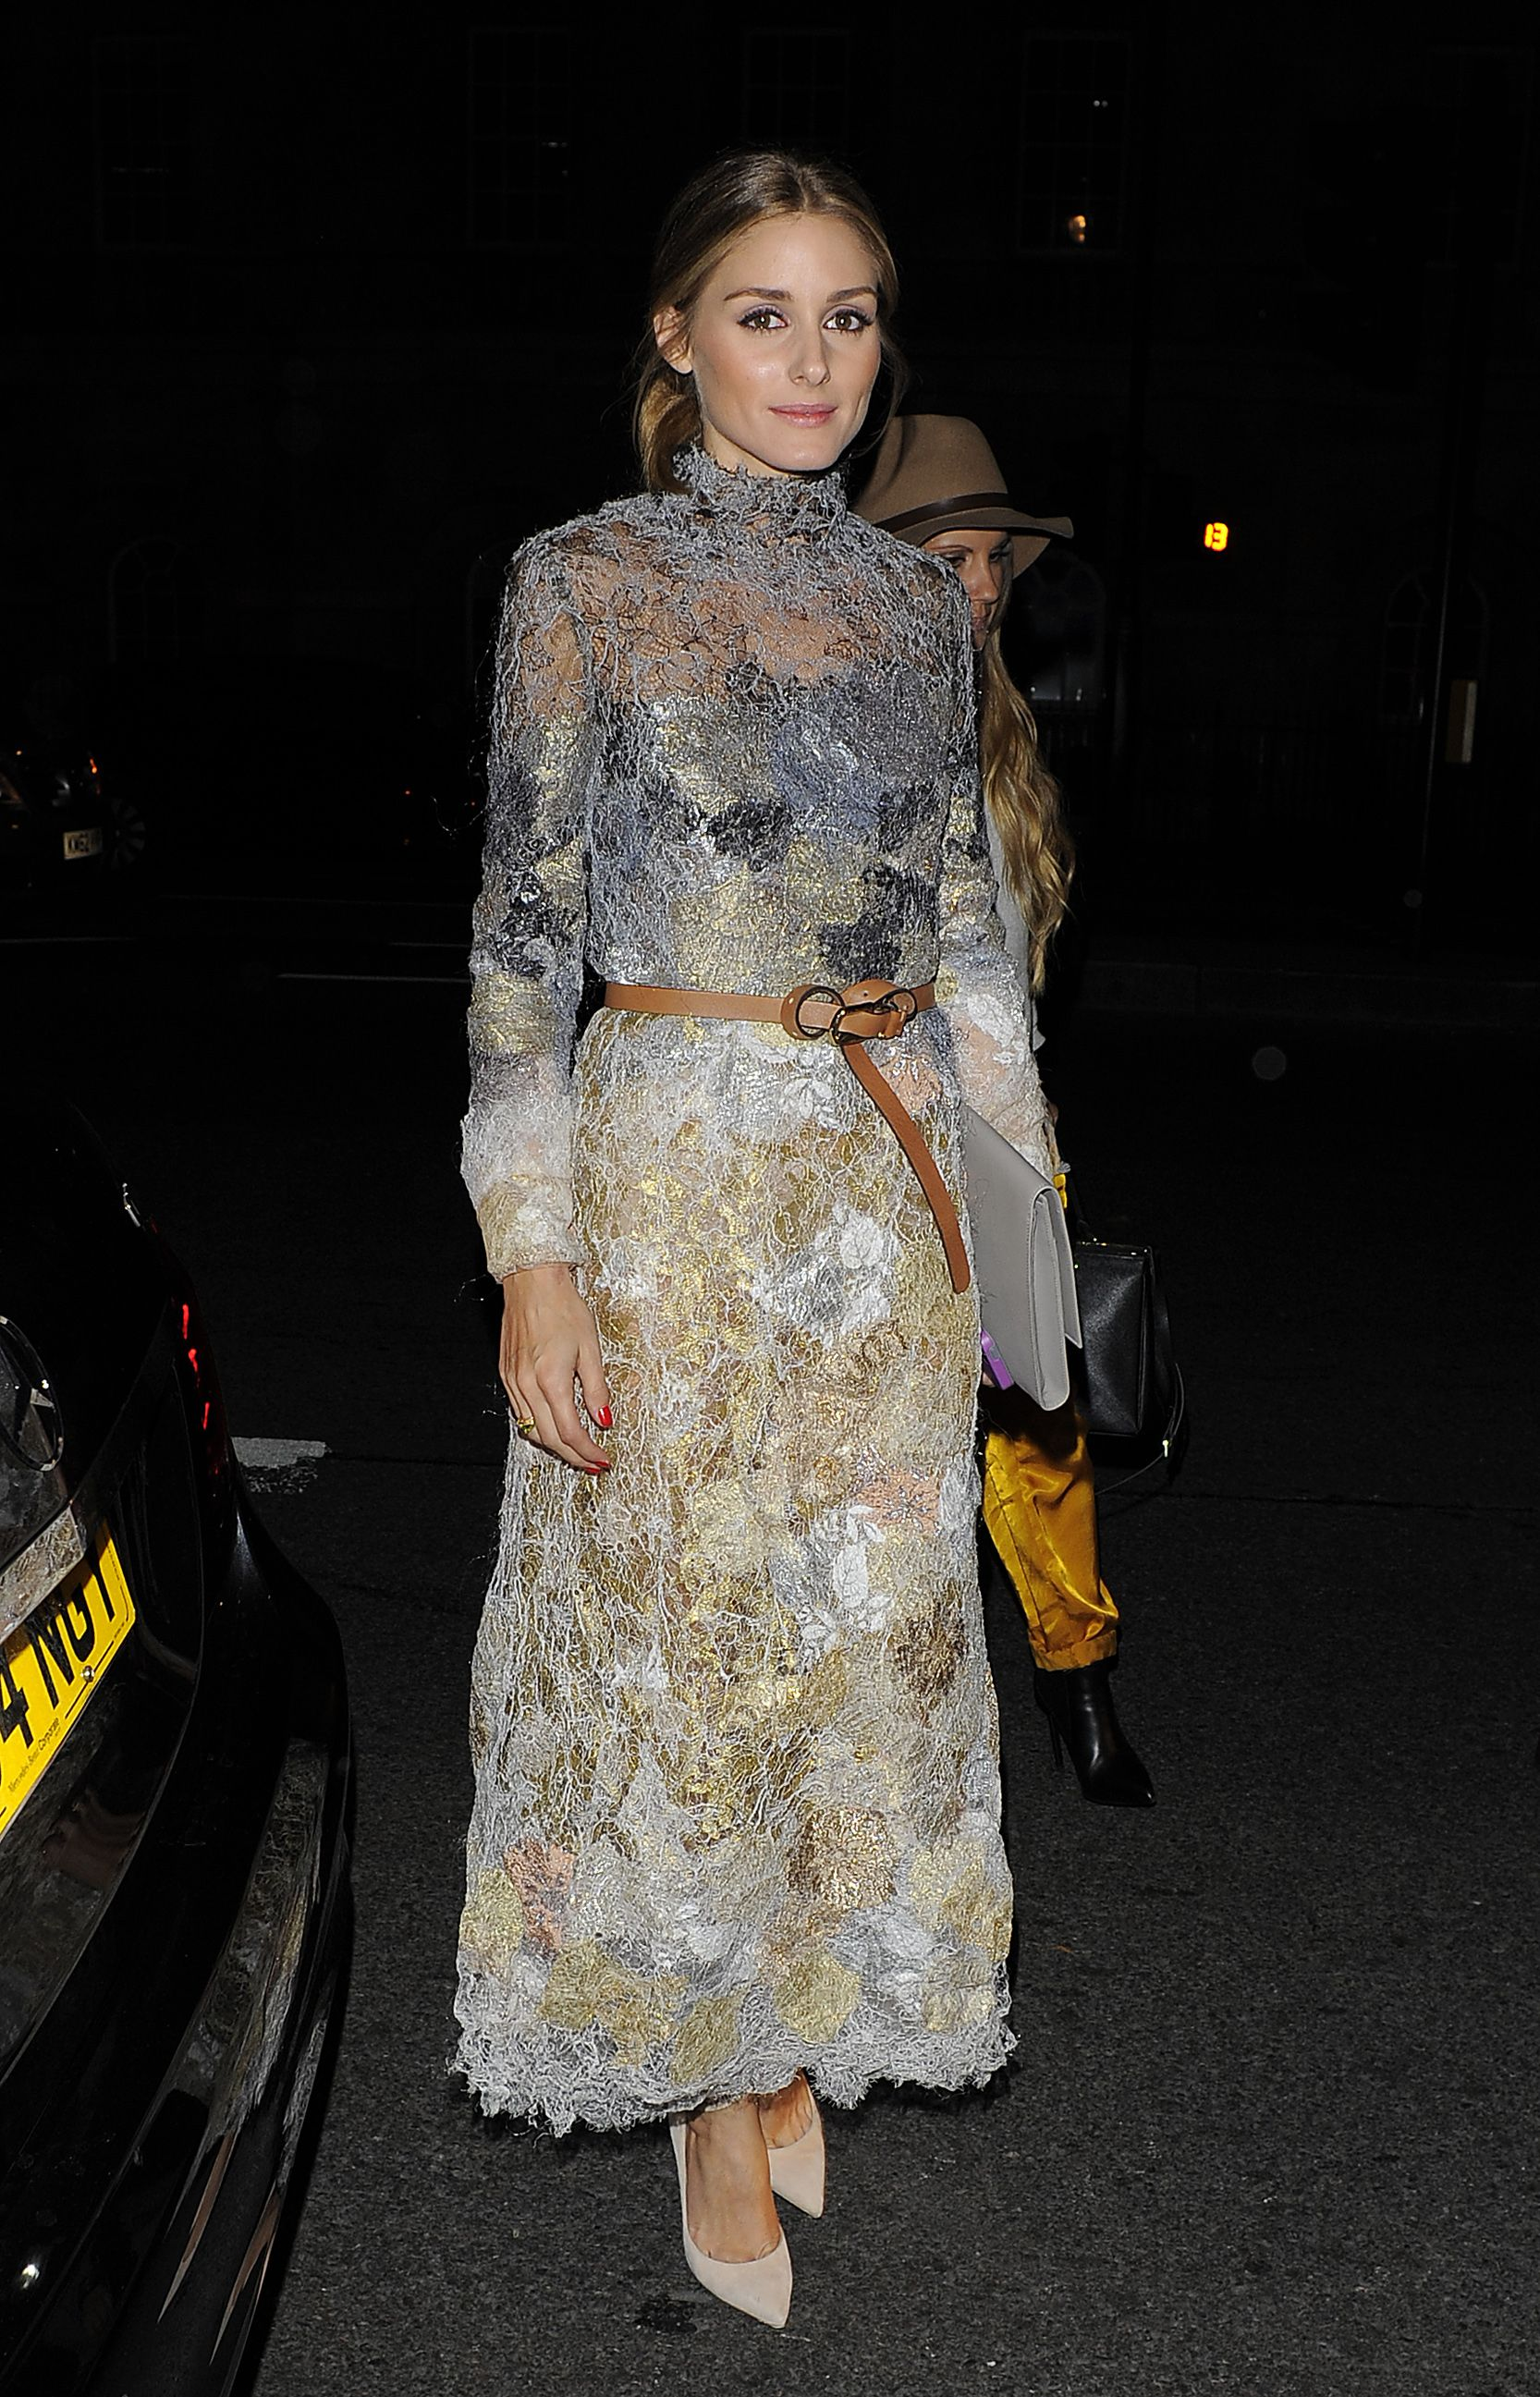 25 all time best pictures of olivia palermo style and fashion - 25 All Time Best Pictures Of Olivia Palermo Style And Fashion 49